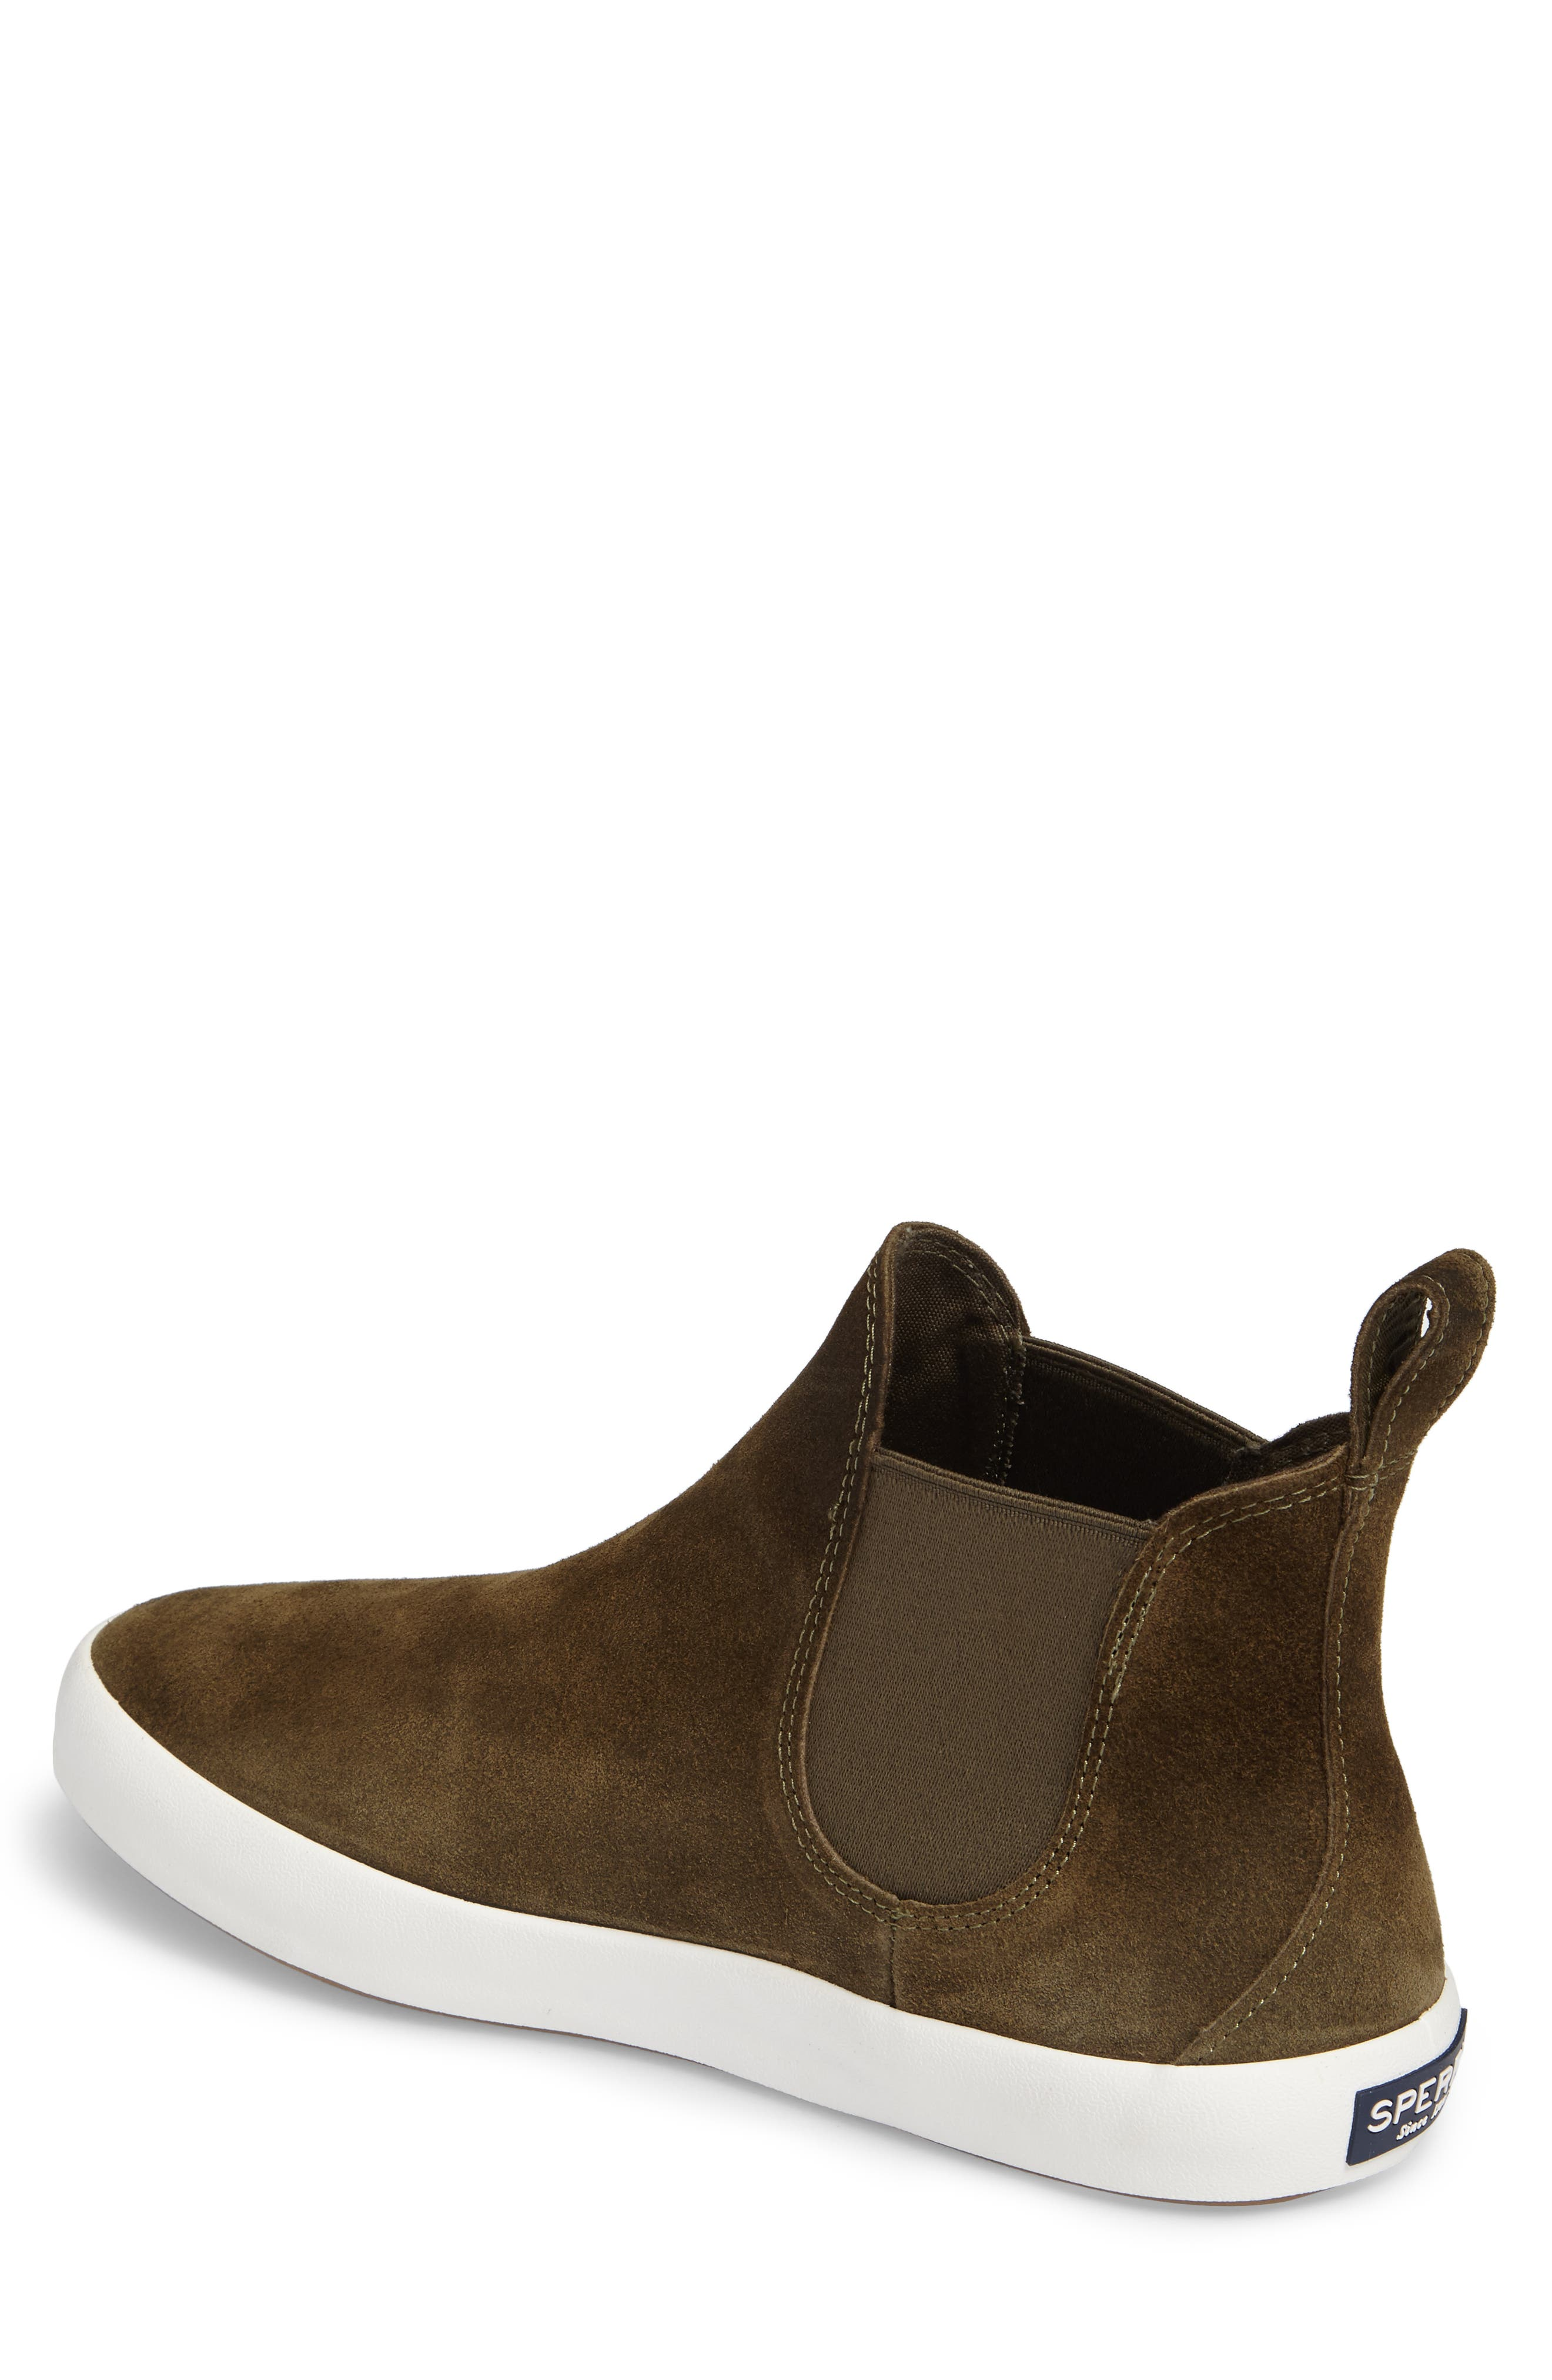 Wahoo Chelsea Sneaker Boot,                             Alternate thumbnail 2, color,                             Olive Leather